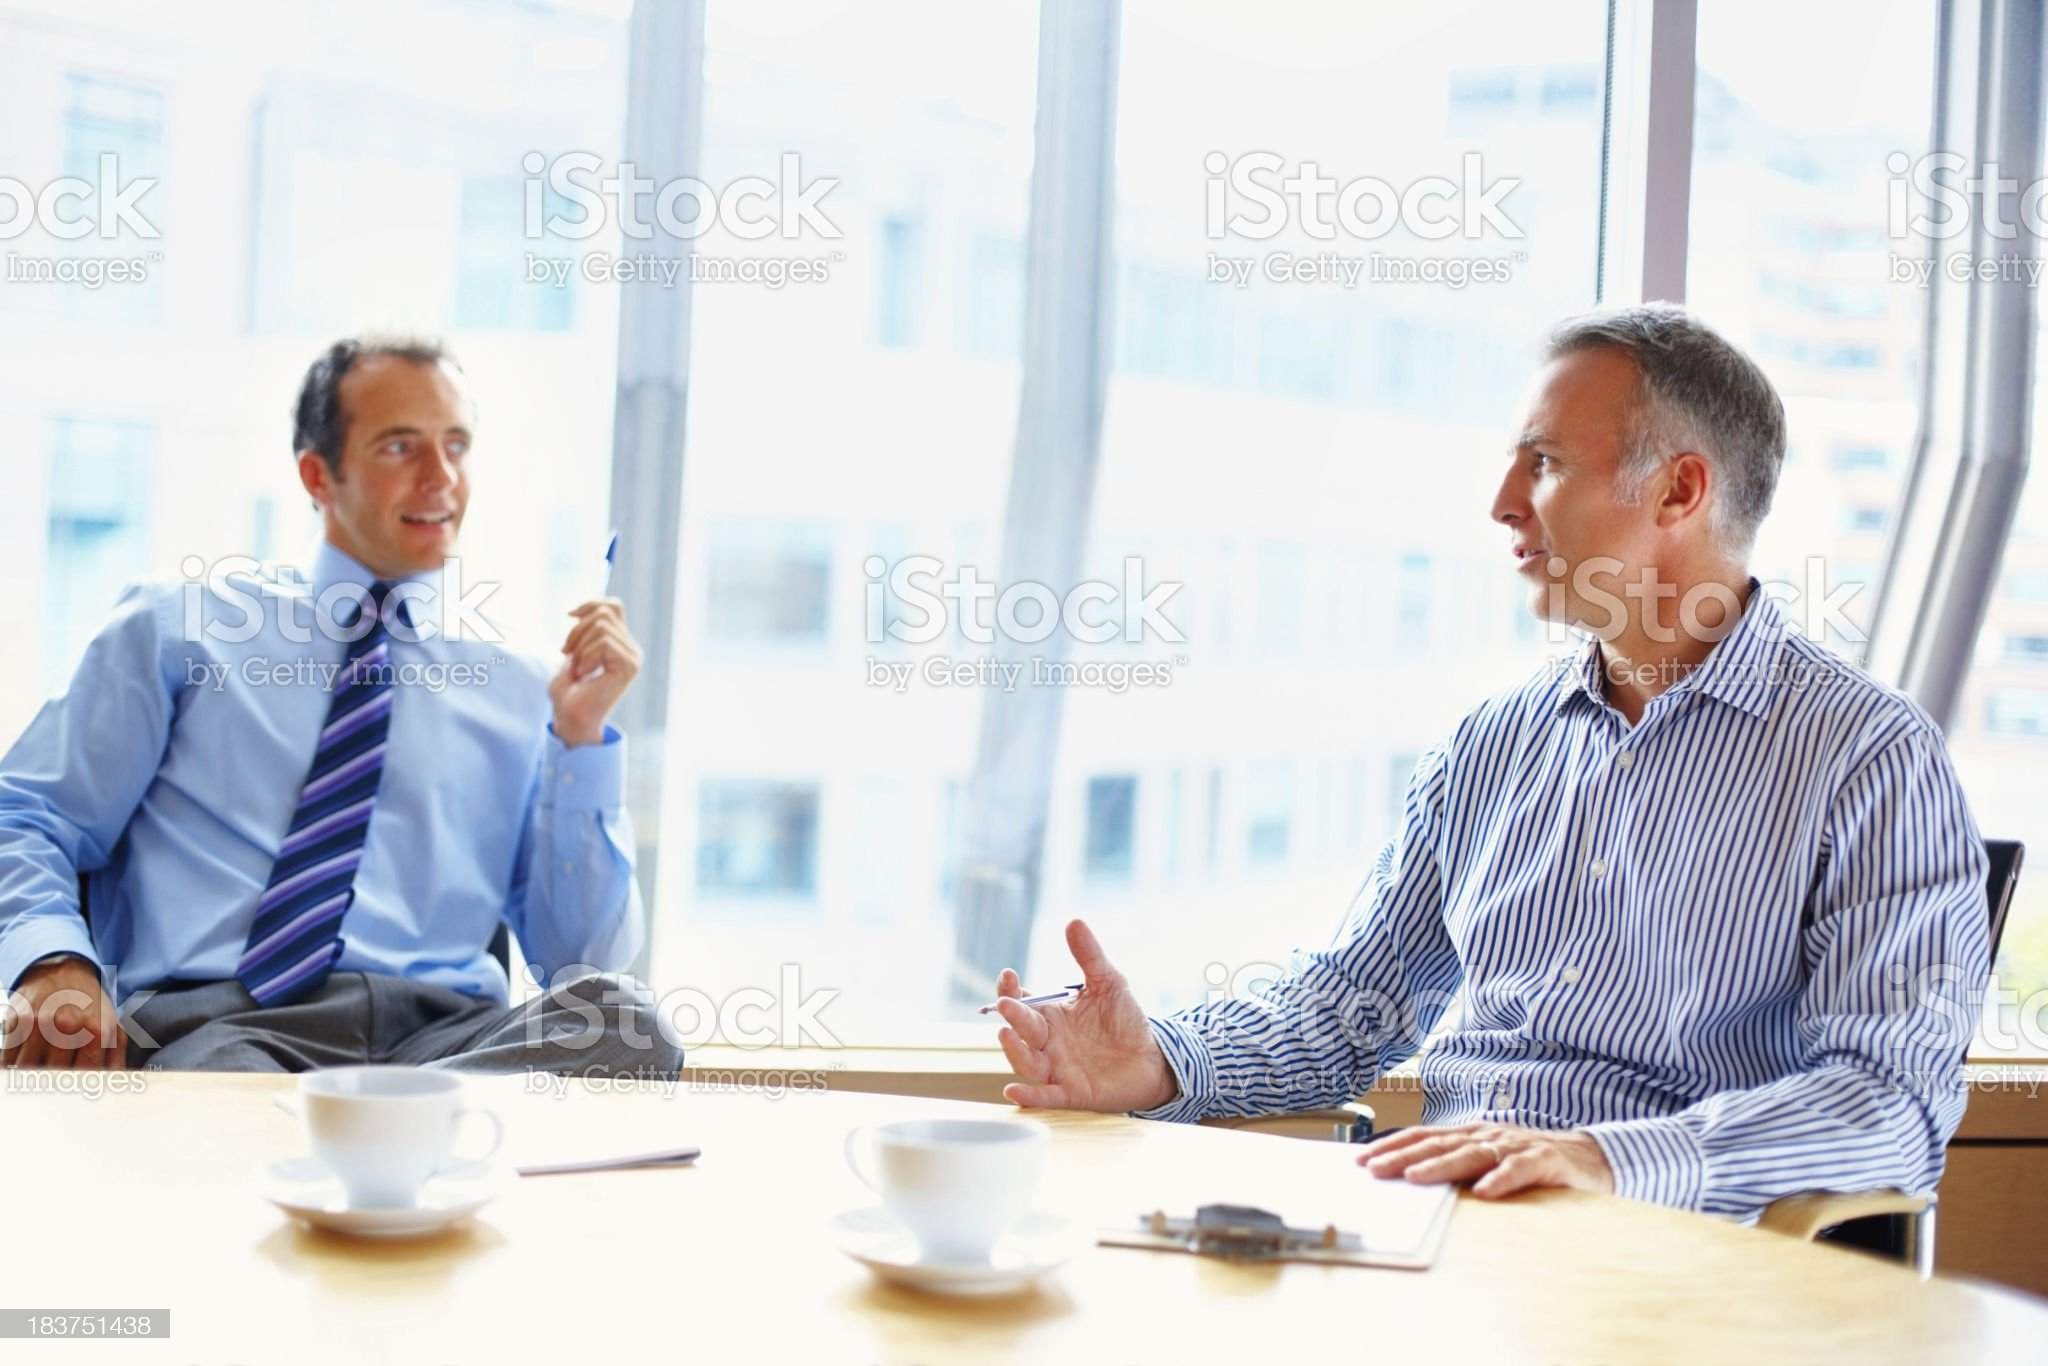 Partners in casual meeting over coffee royalty-free stock photo